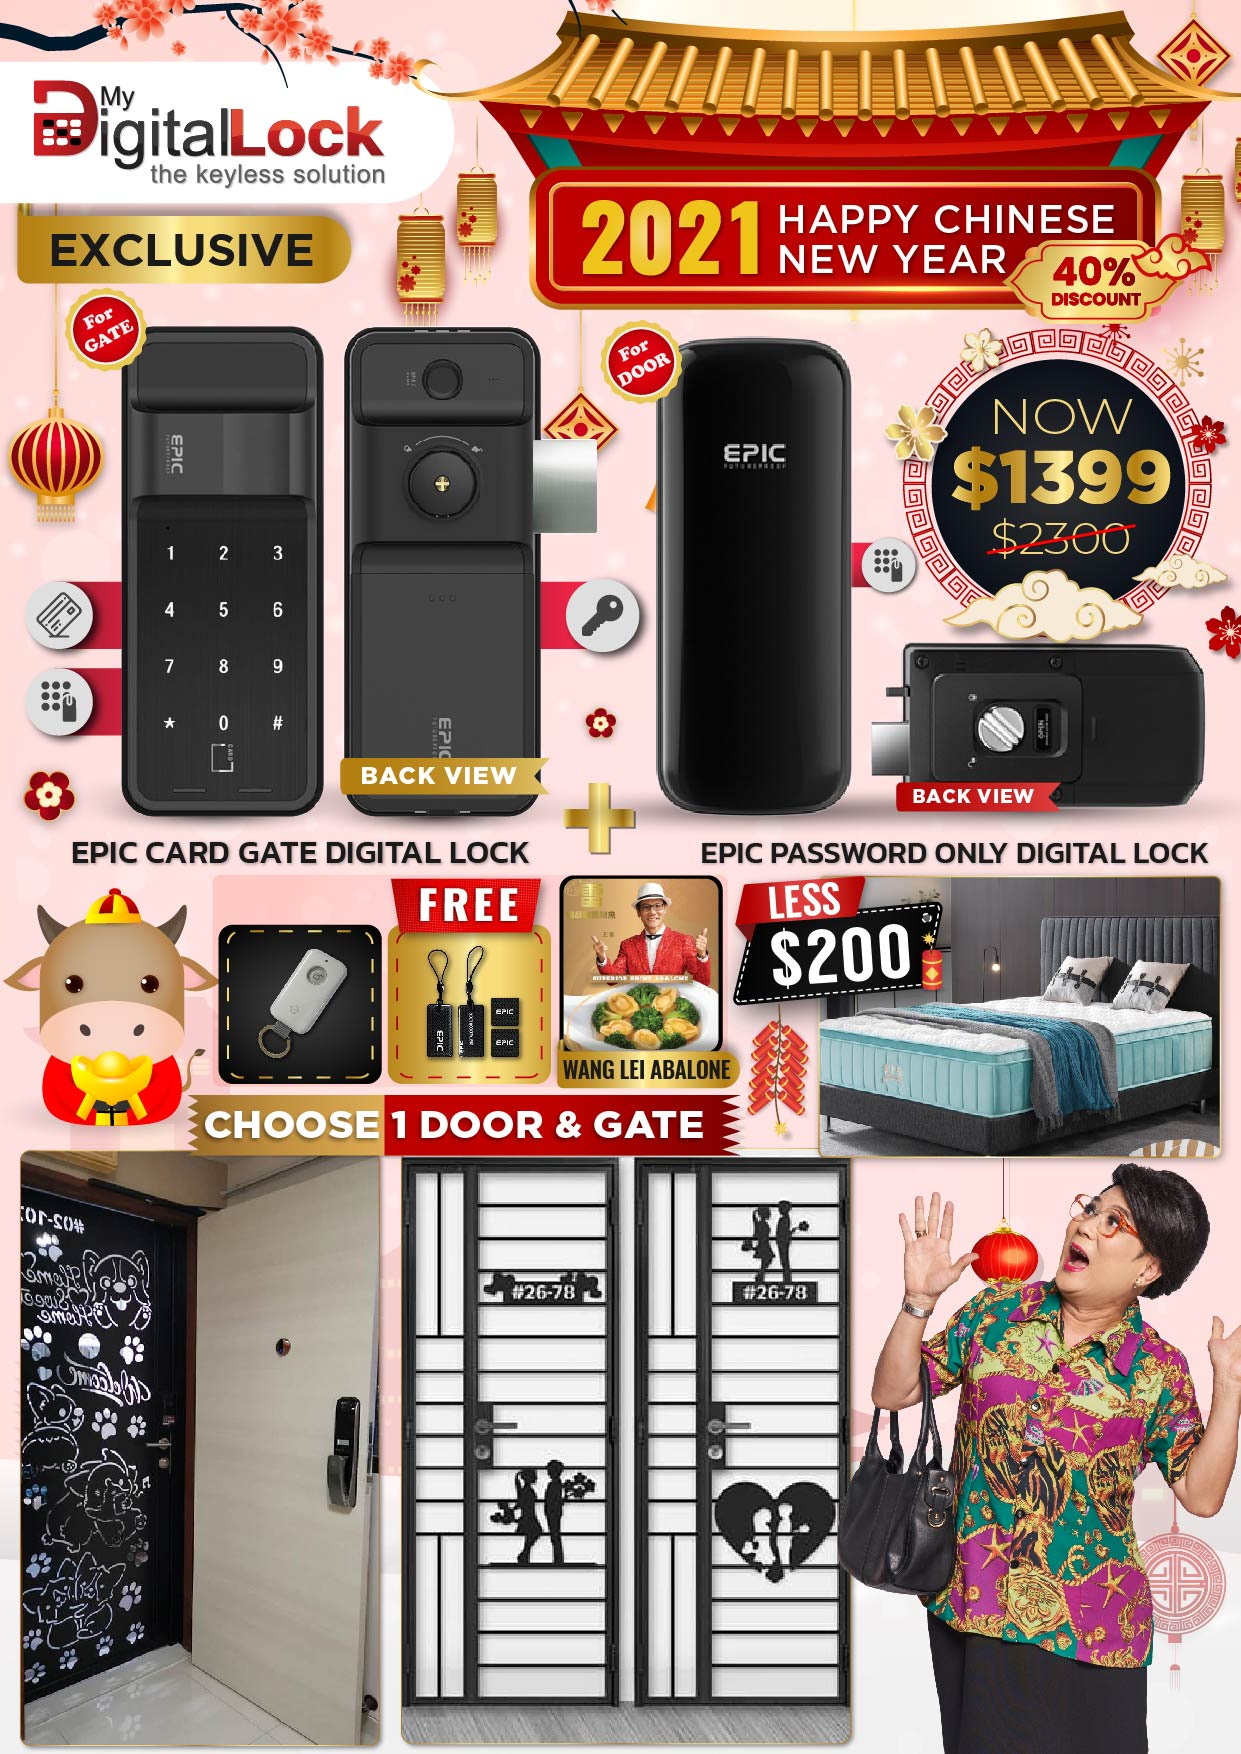 cardgate-digitallock-chinese-newyear-promotions